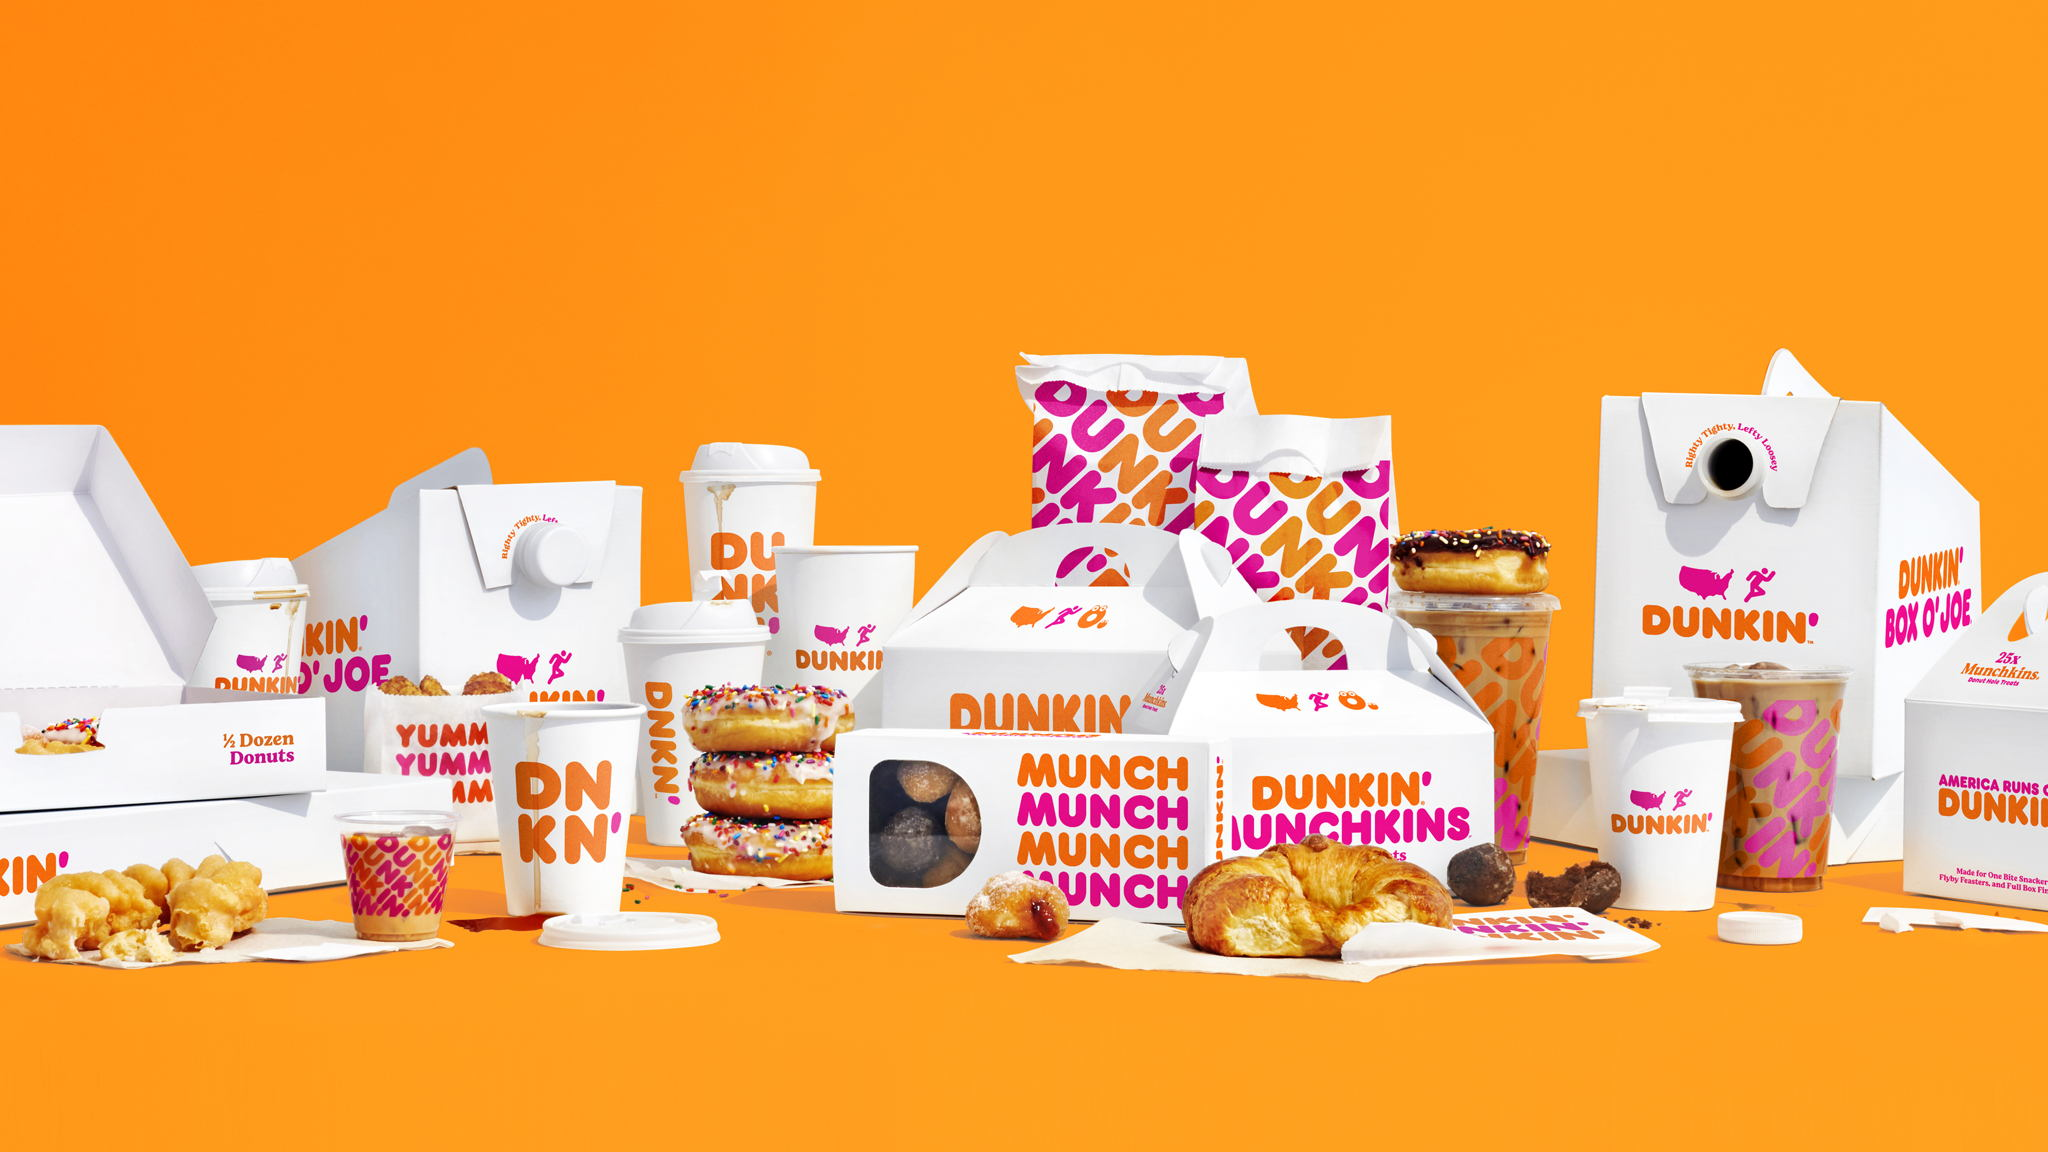 04_Dunkin_PackOverview.jpg